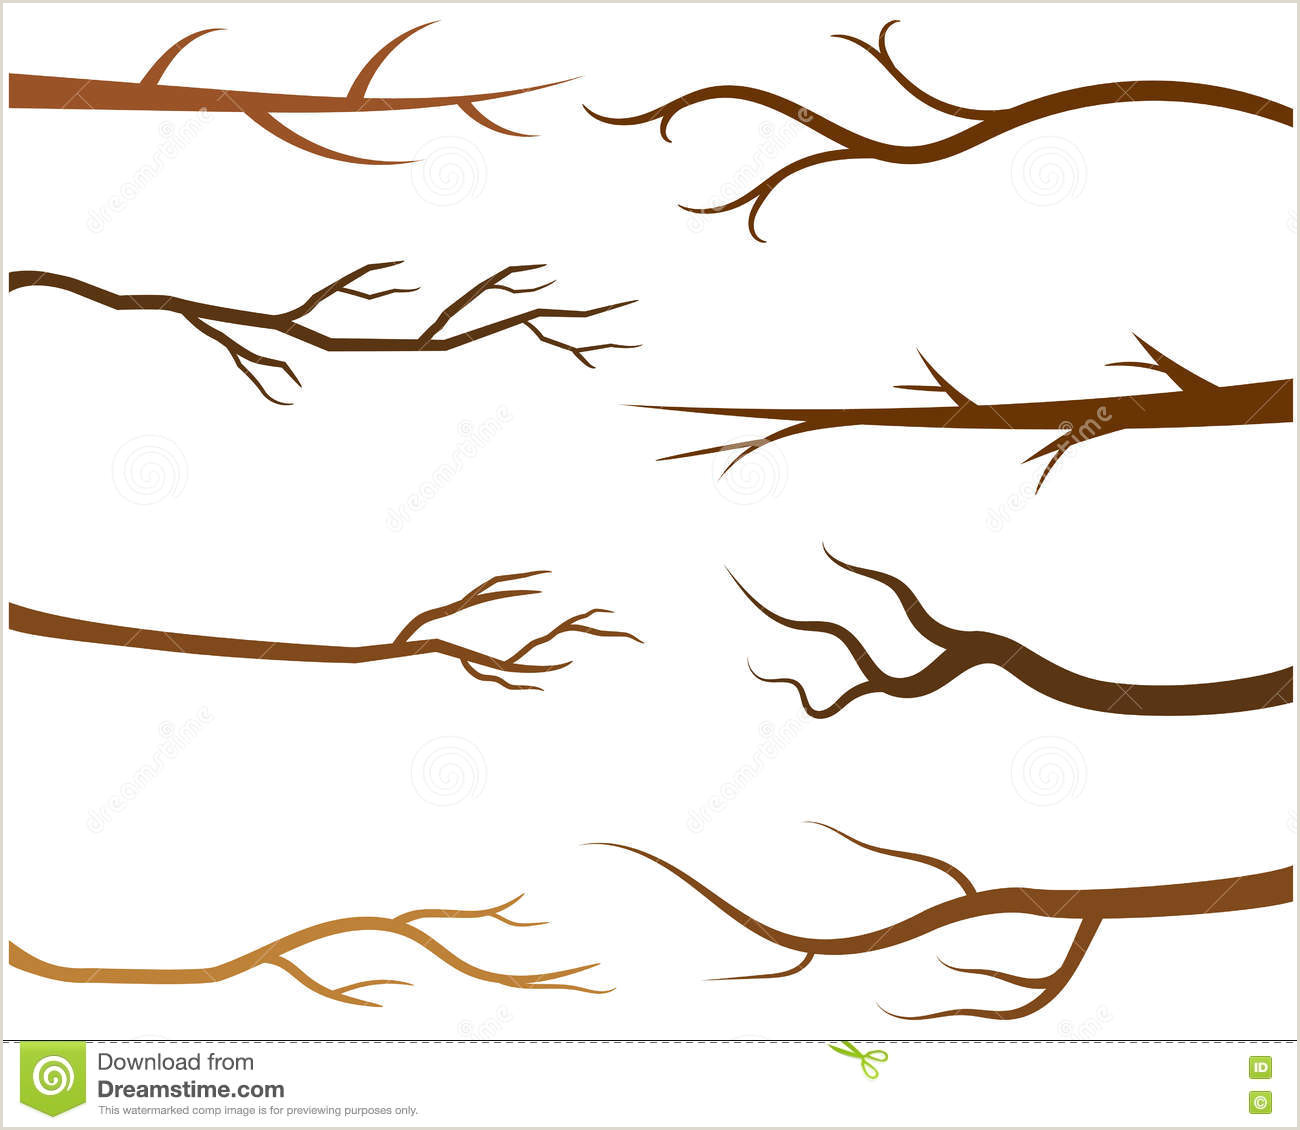 Tree without Leaves Template Brown Tree Branches without Leaves Stock Vector